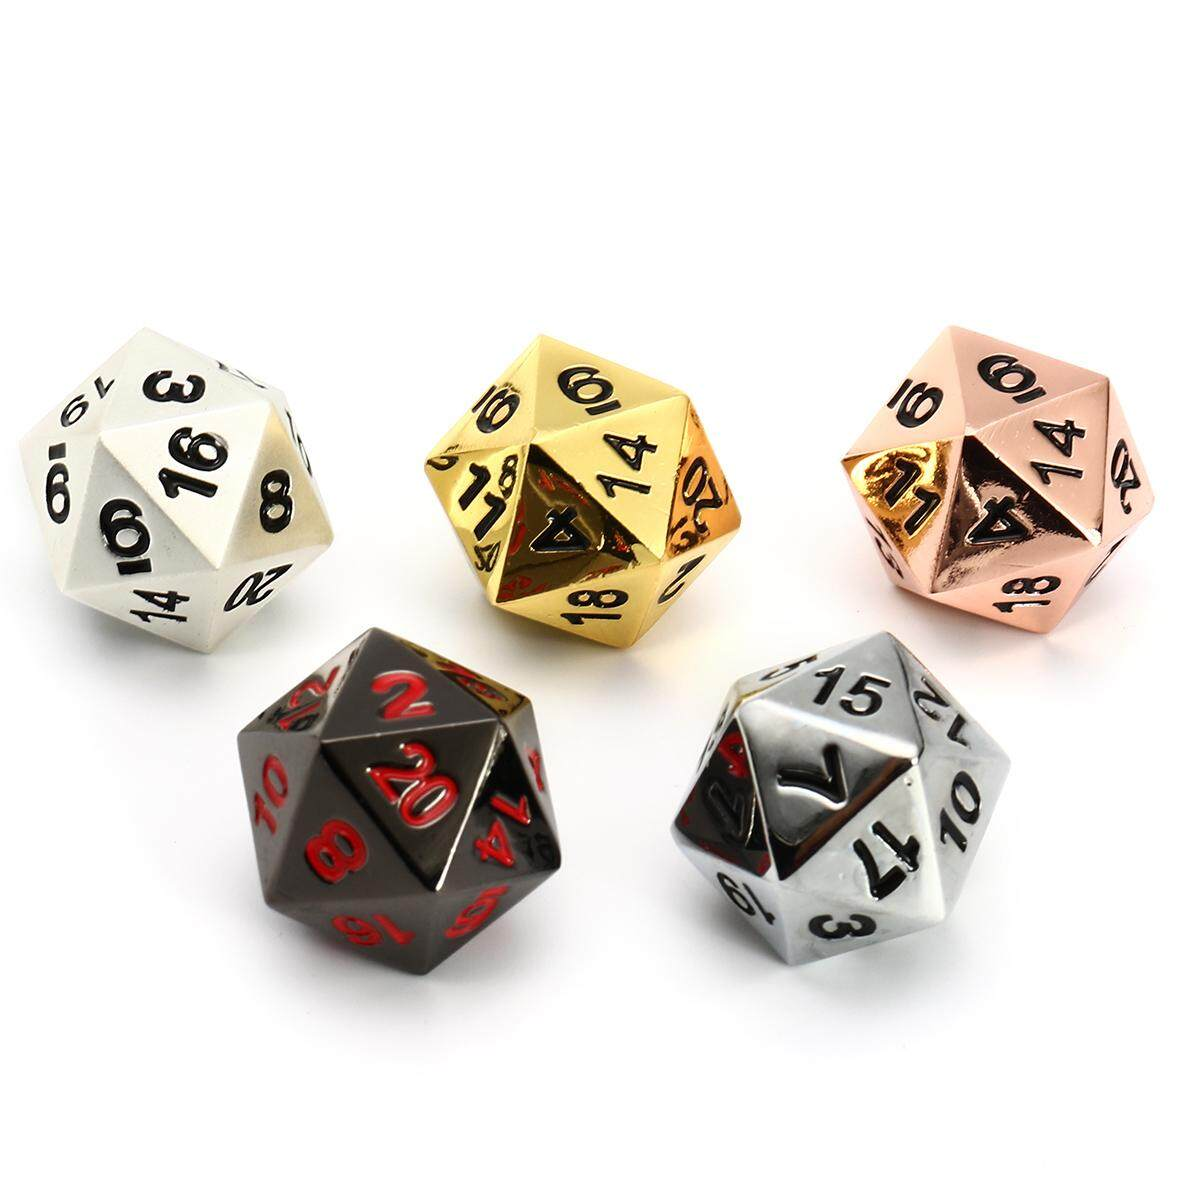 Solid Metal 5pc D20 Polyhedral Dice Set Copper, Silver, Gold, Obsidian, Pearl By Audew.